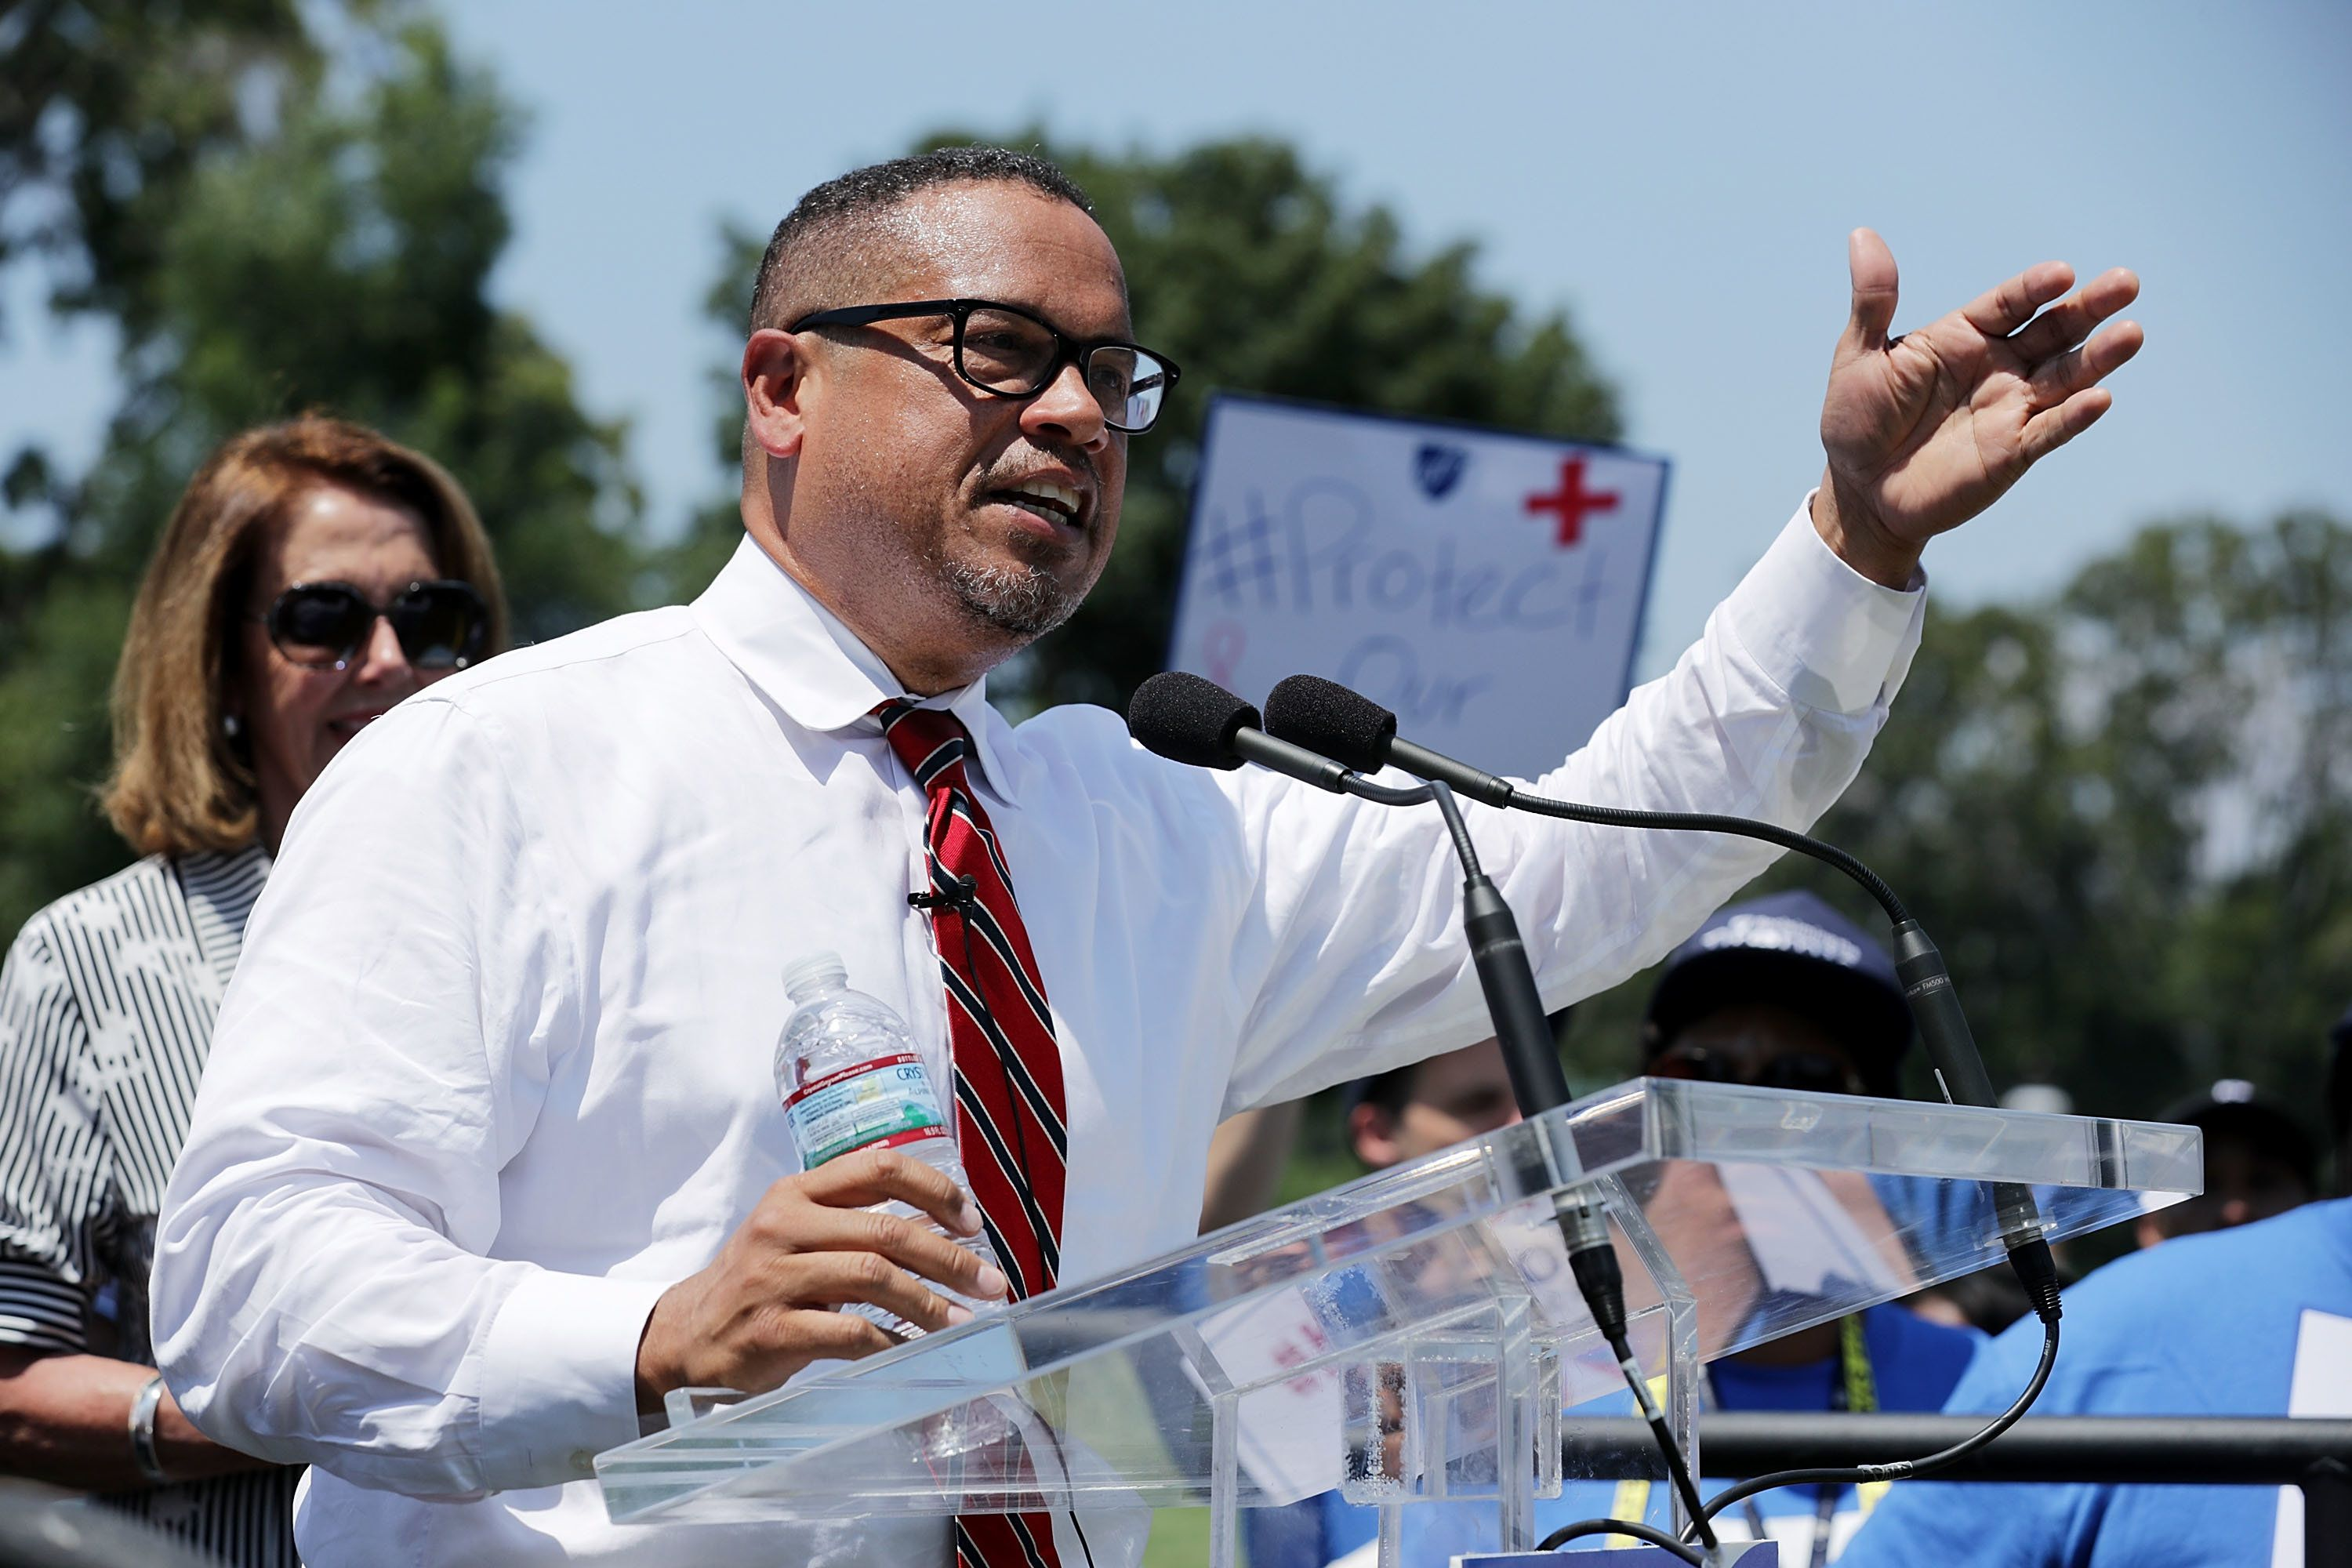 Most Top Dems, Progressive Groups Reserve Judgment On Keith Ellison Allegations